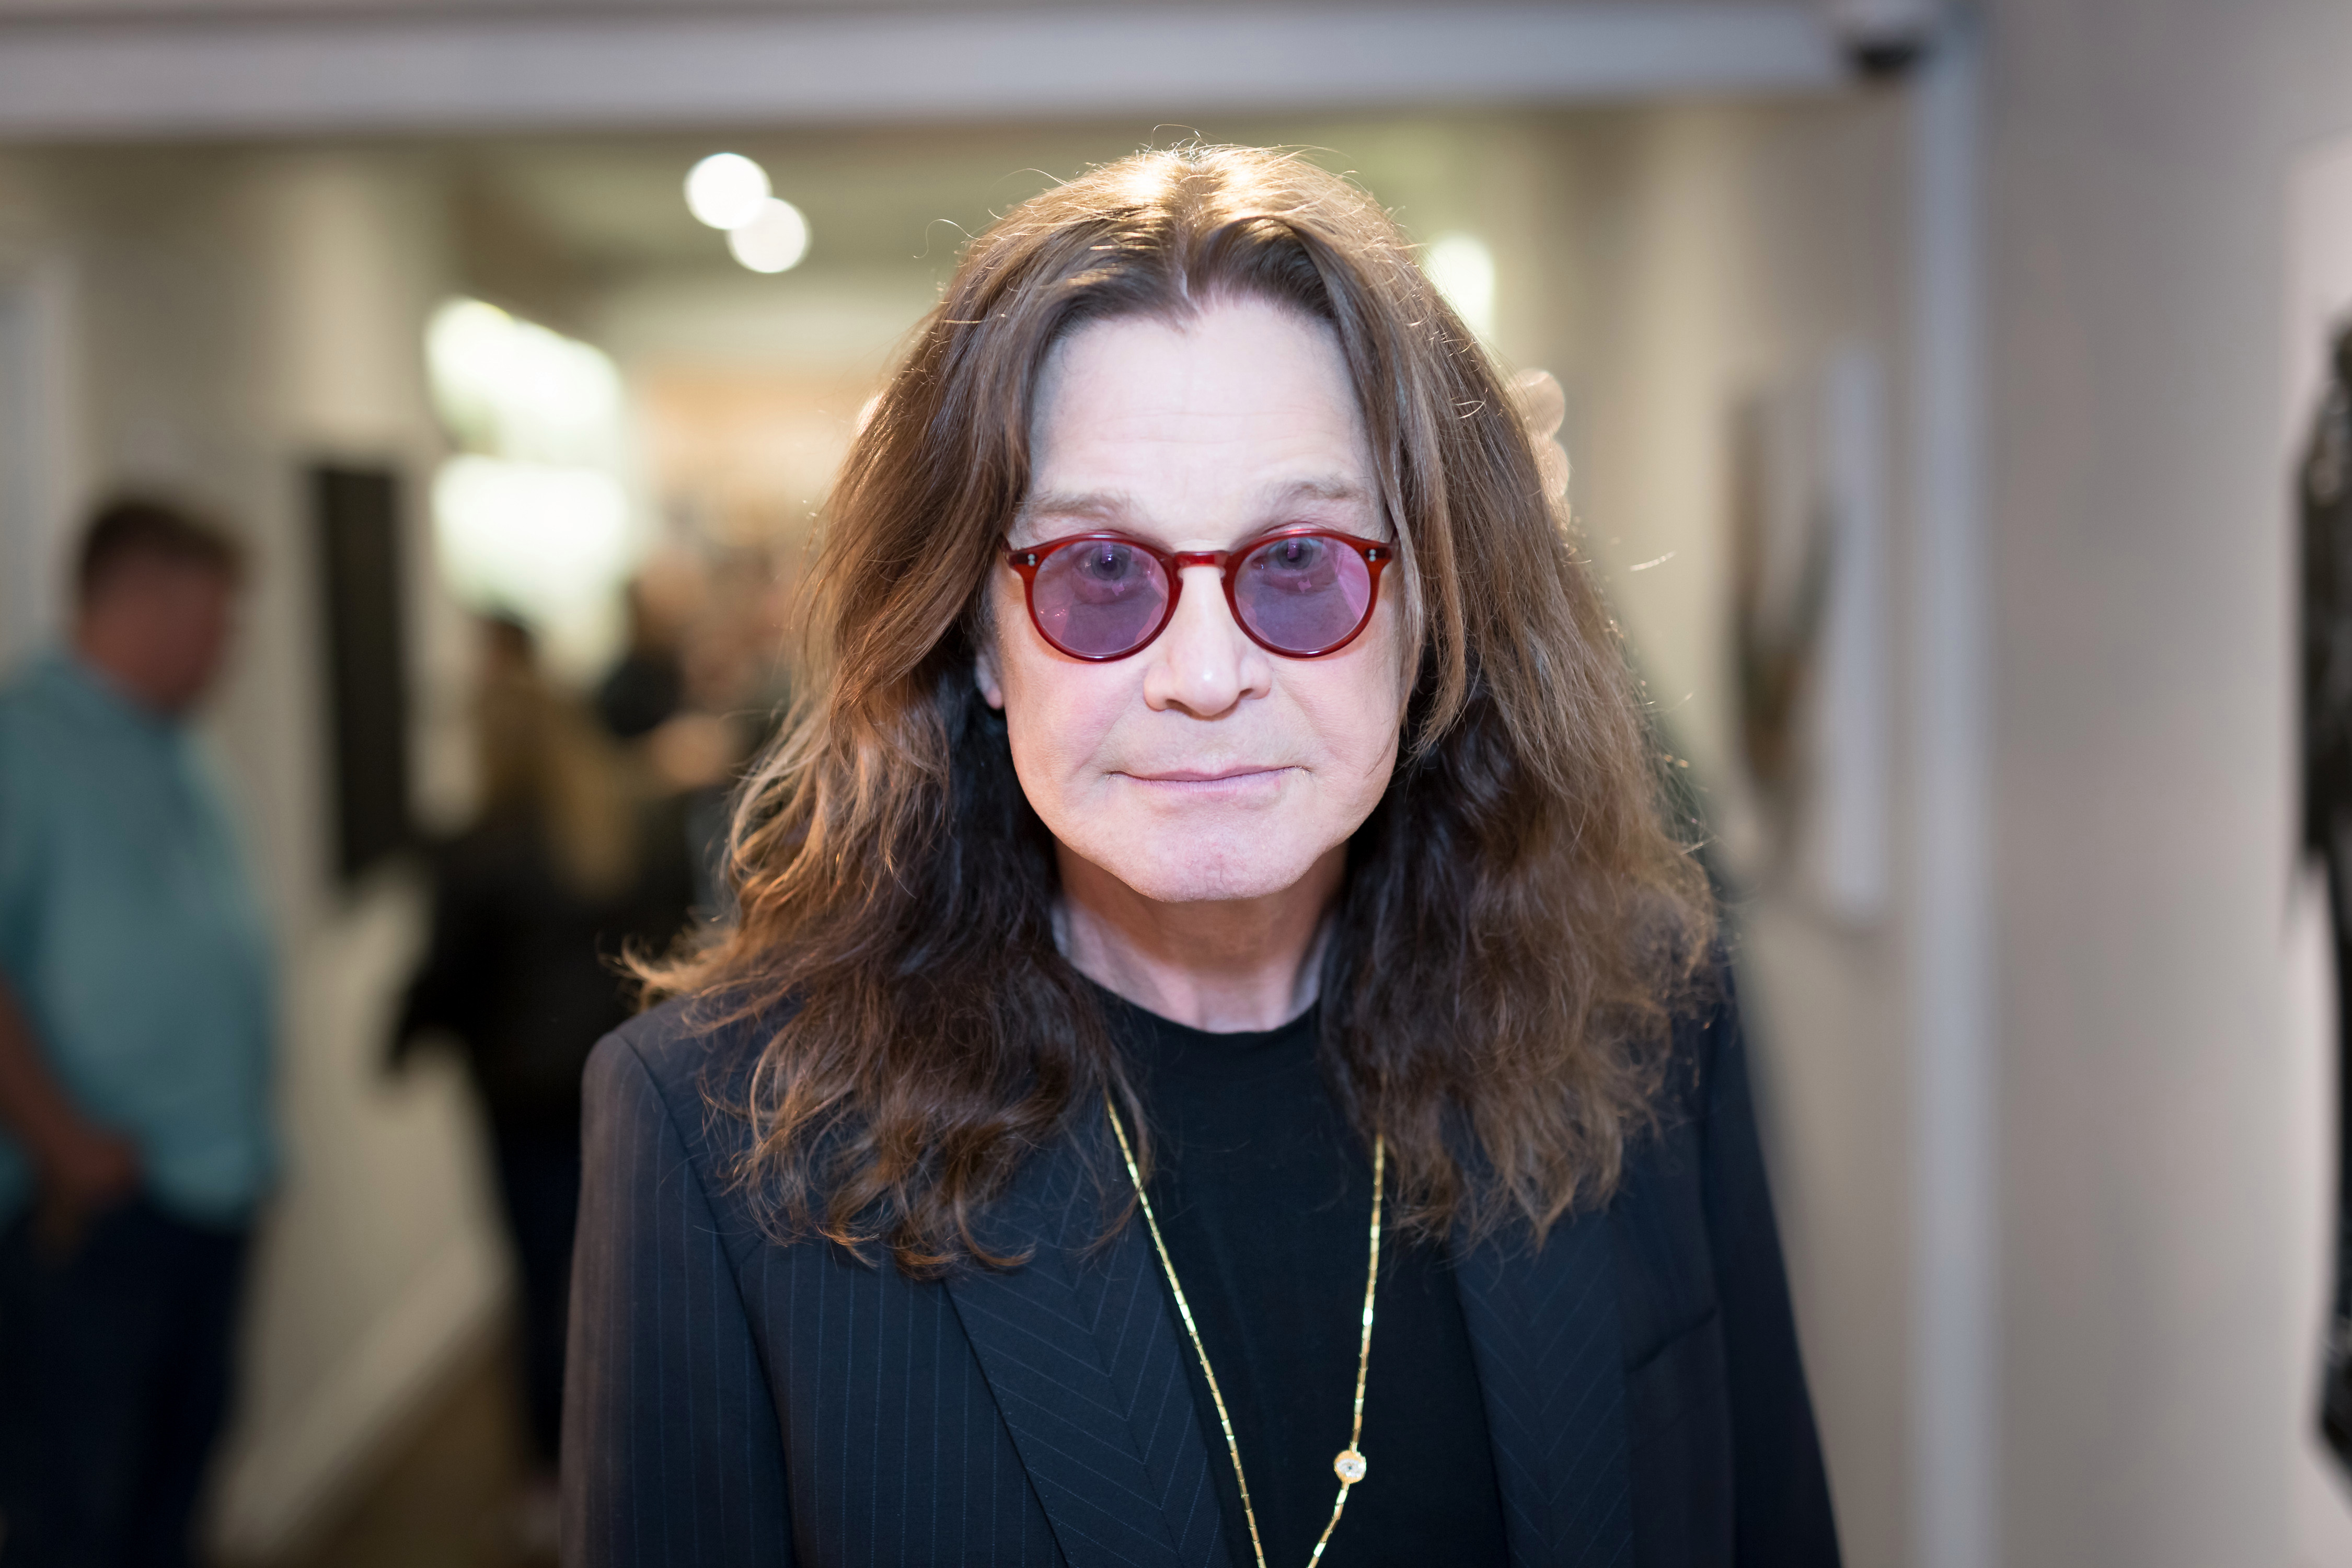 Ozzy Osbourne has no plans to retire